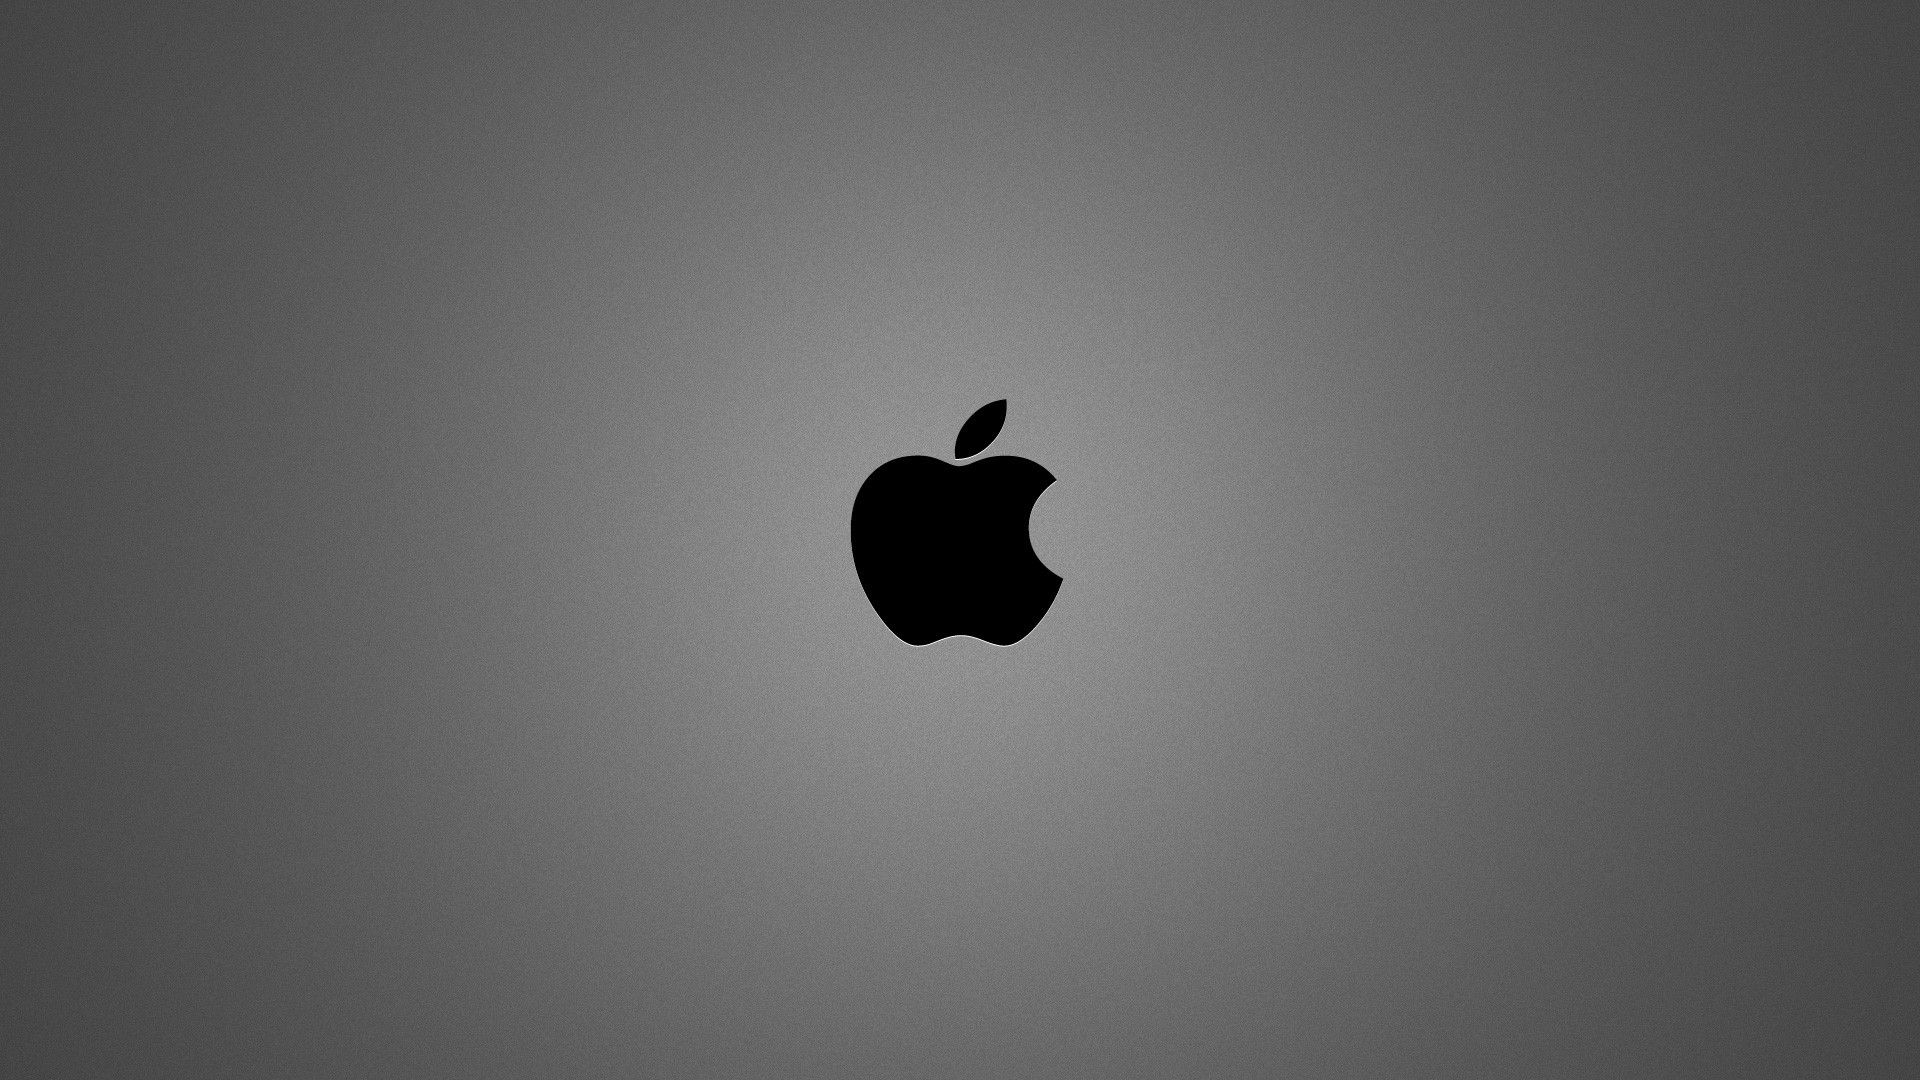 Apple 1920x1080 Wallpaper